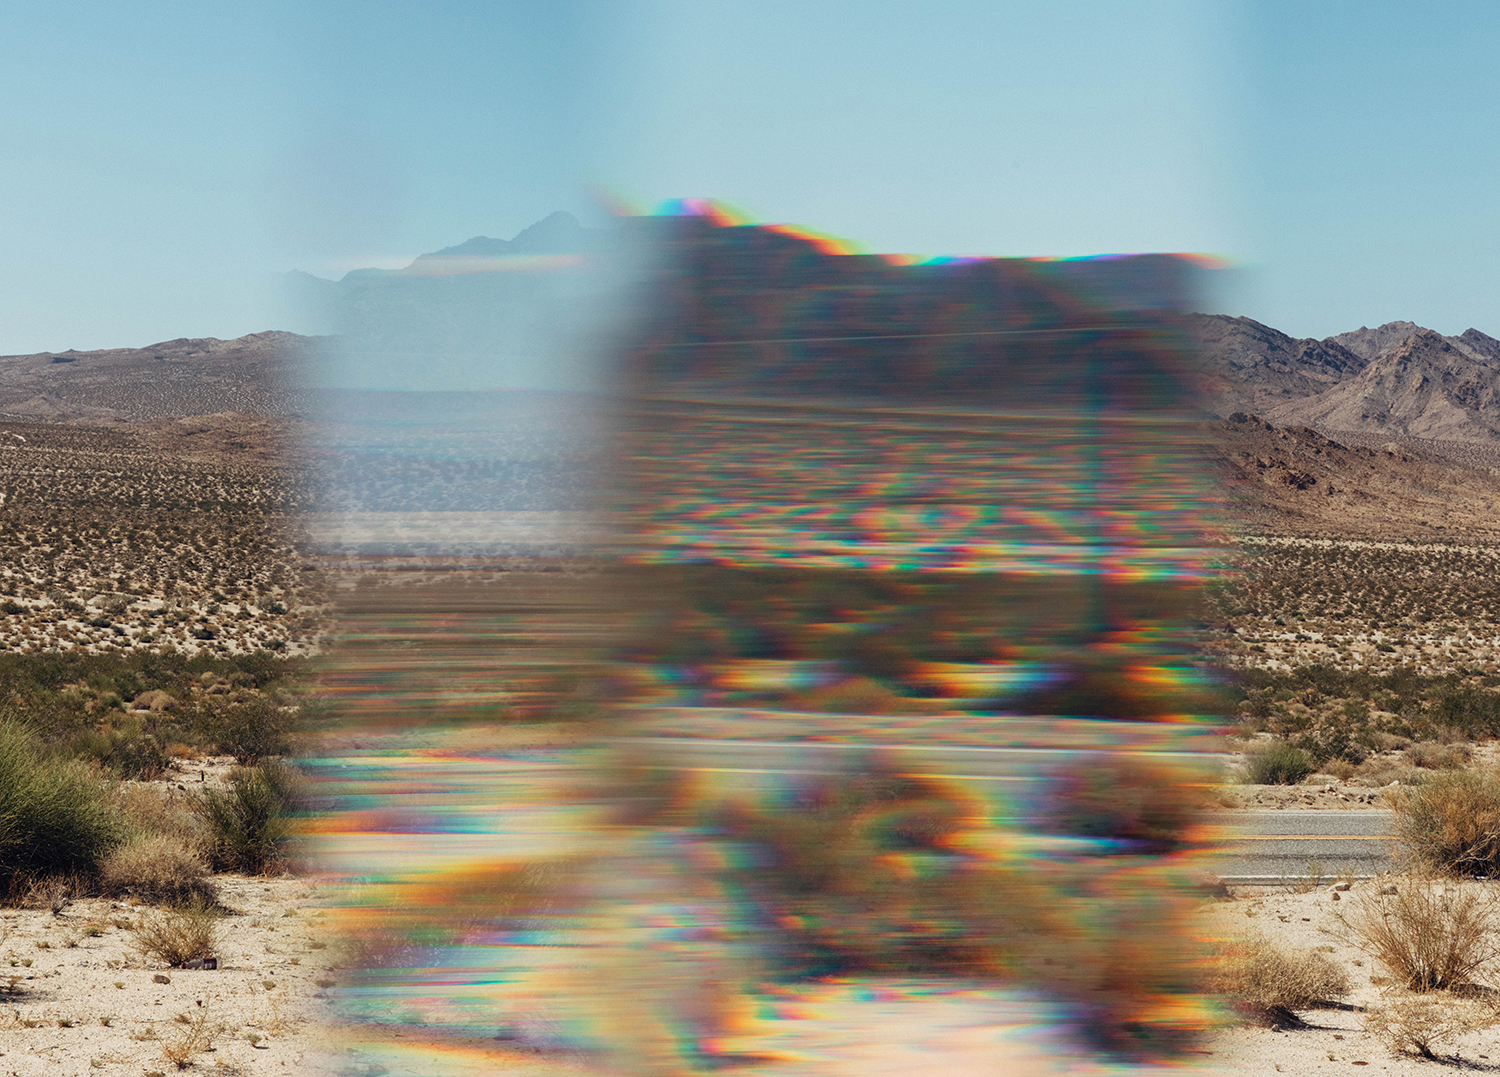 """""""Wrong Place, Right Time.,"""" Archival Metallic Inkjet Print, 19.75"""" x 27.5"""", 2017 © Mikayla Whitmore"""